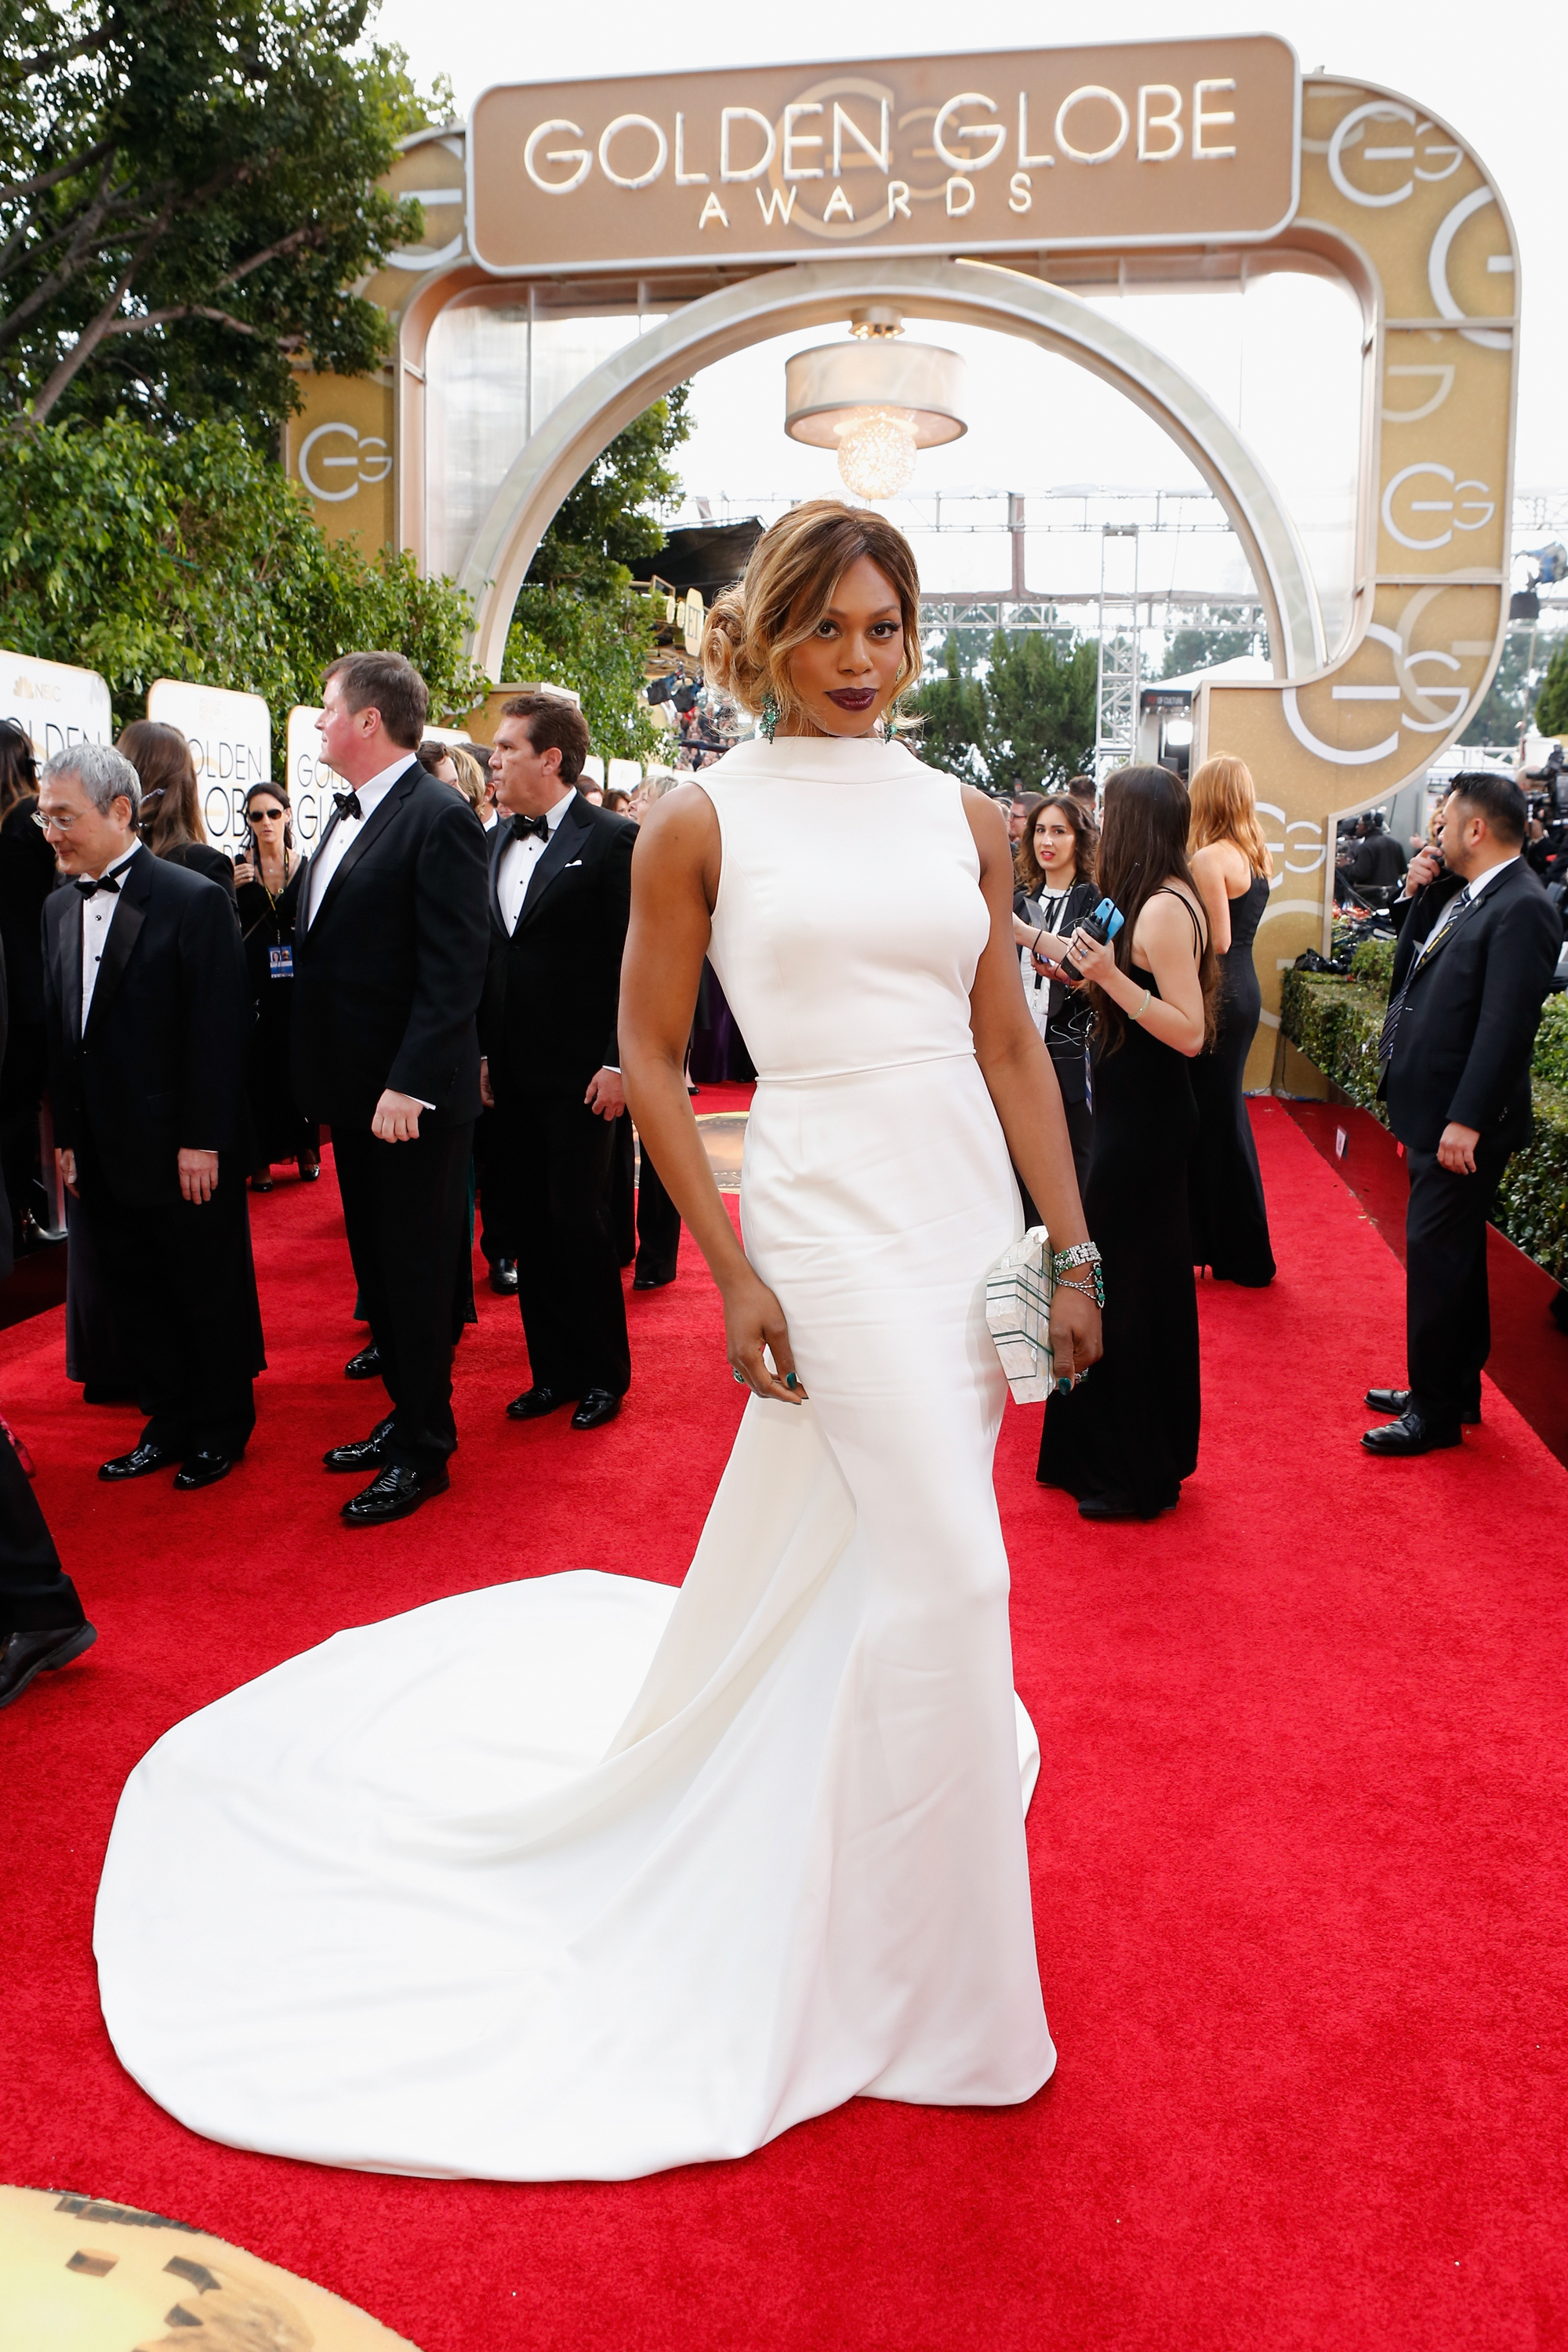 Laverne Cox arrives to the 73rd Annual Golden Globe Awards on Jan. 10, 2016 in Beverly Hills.